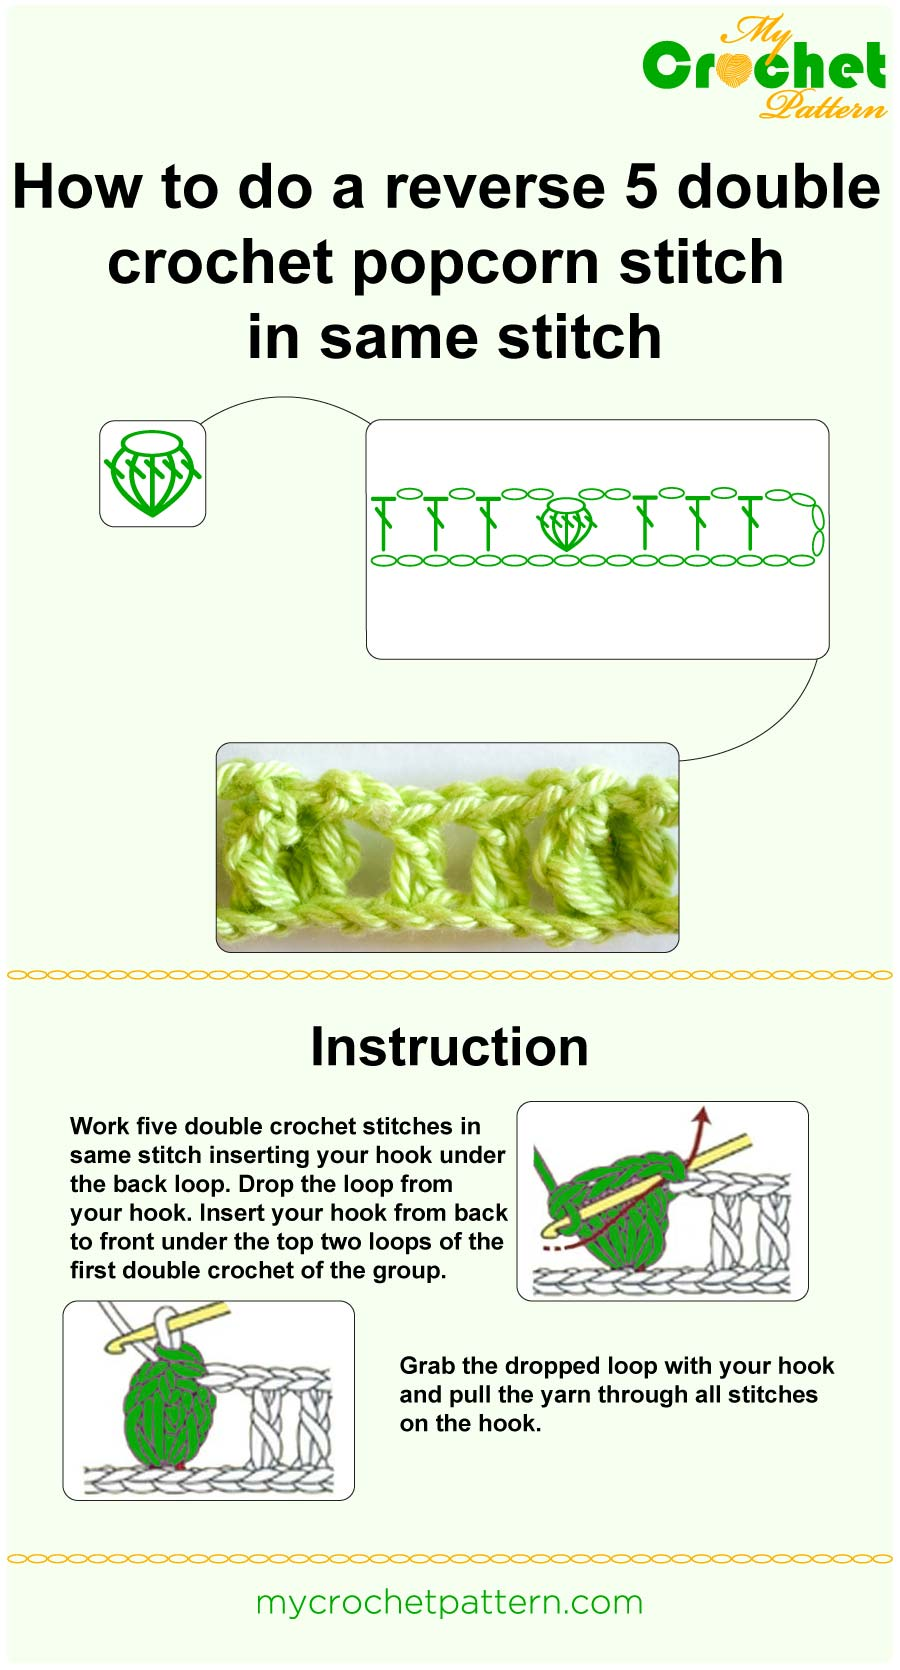 how to do a reverse 5 dc popcorn in same stitch - infographic